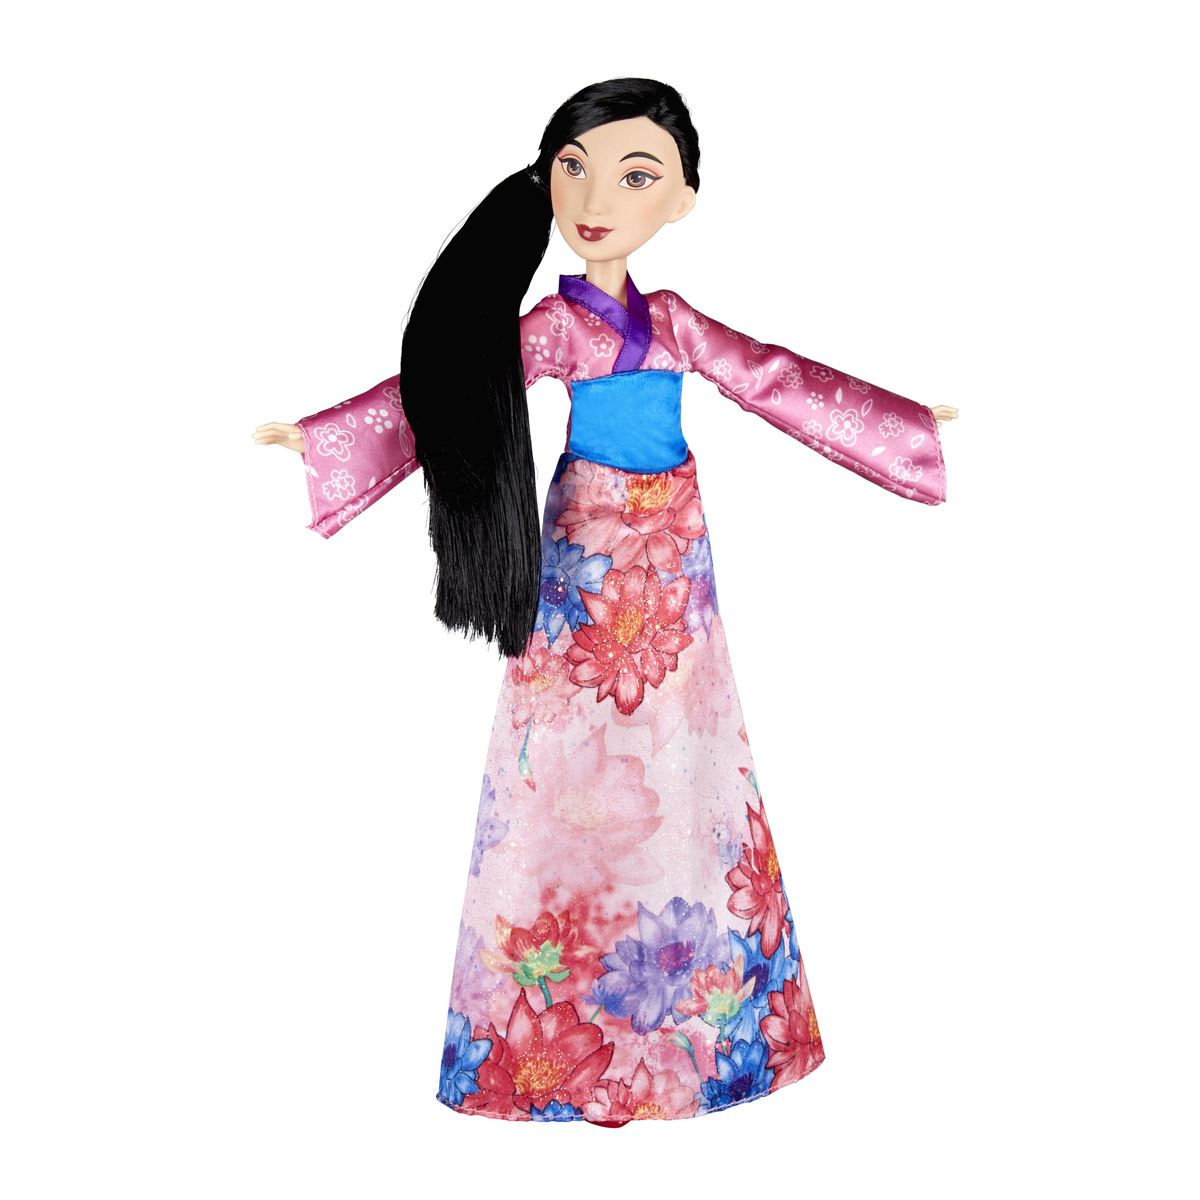 Muñeca mulan royal shimmer disney princesas - Sanborns